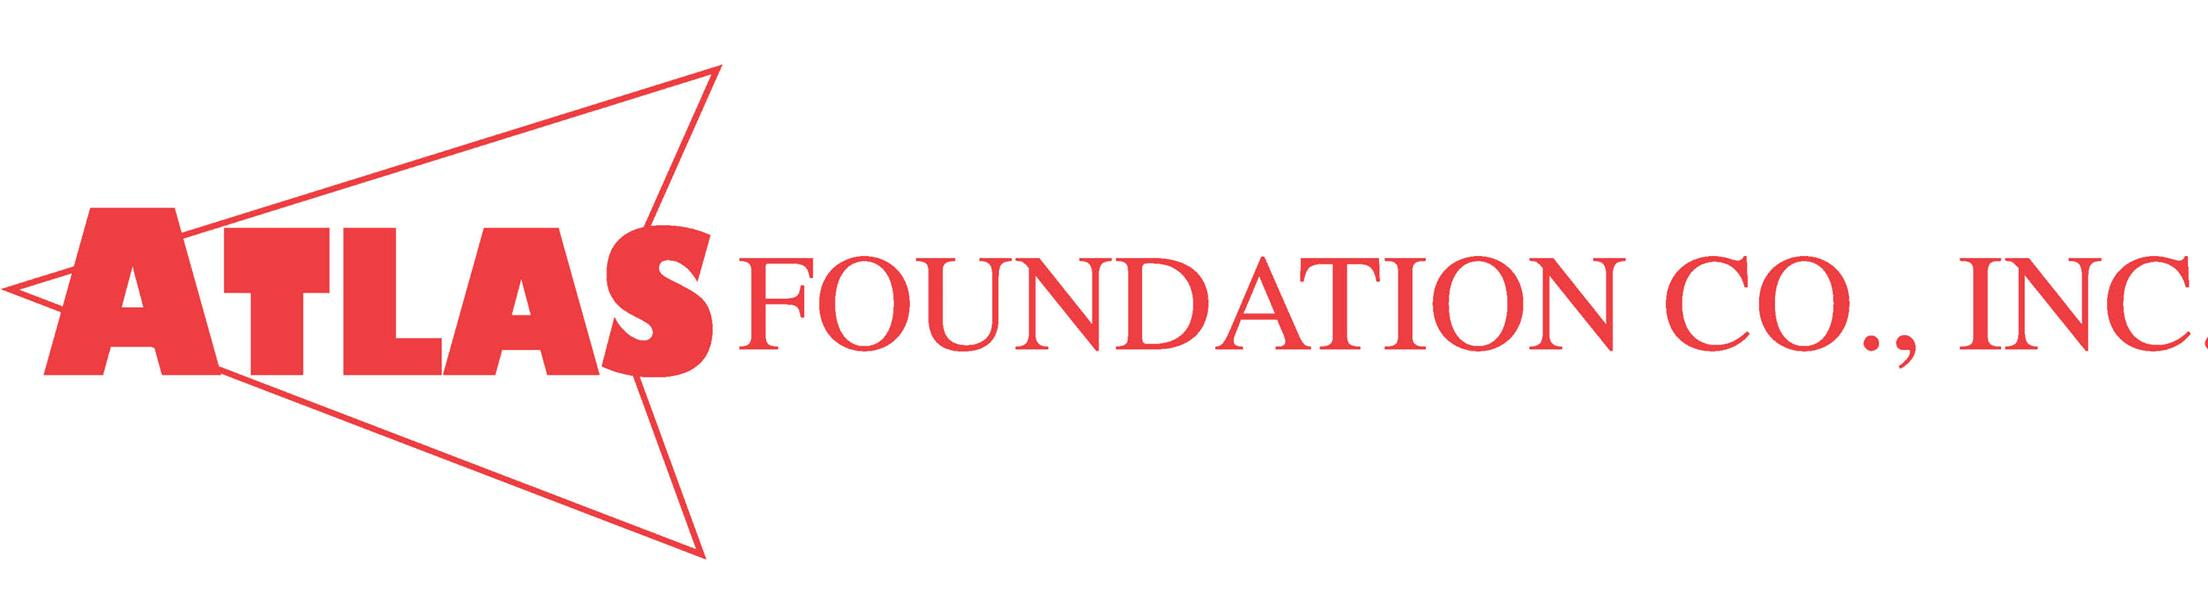 Atlas Foundation Co, Inc